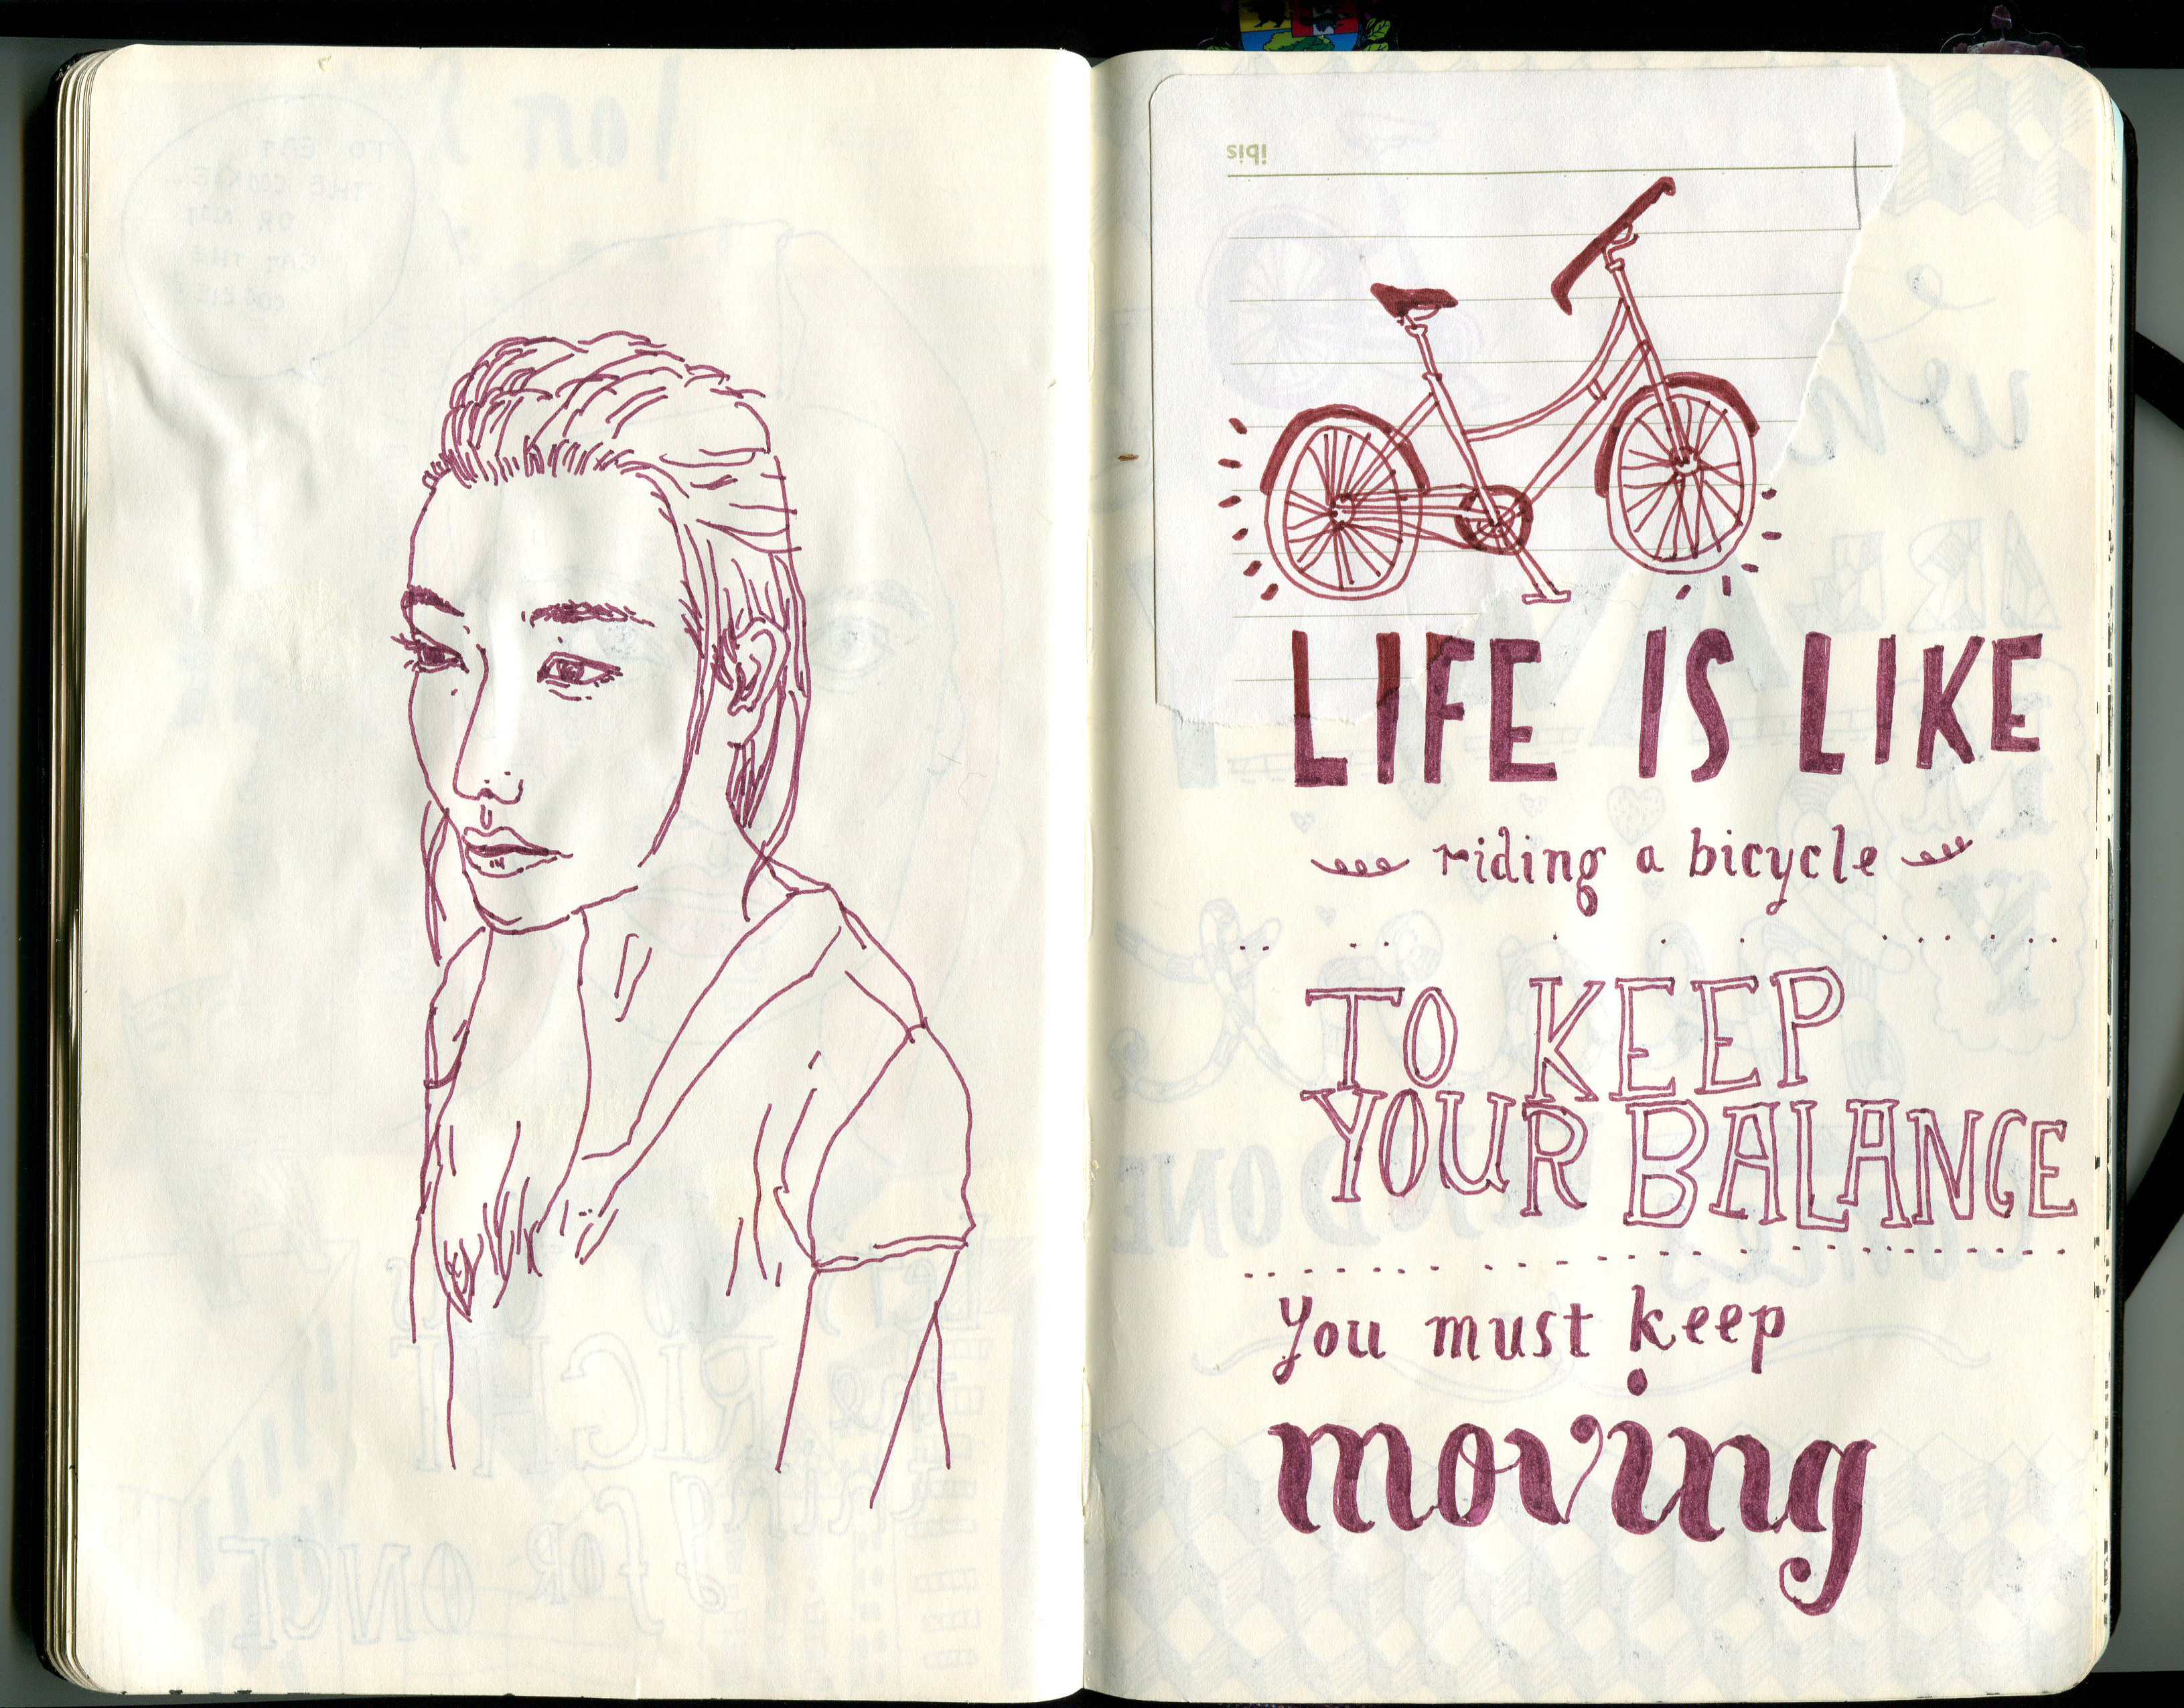 Molskine journal 2012